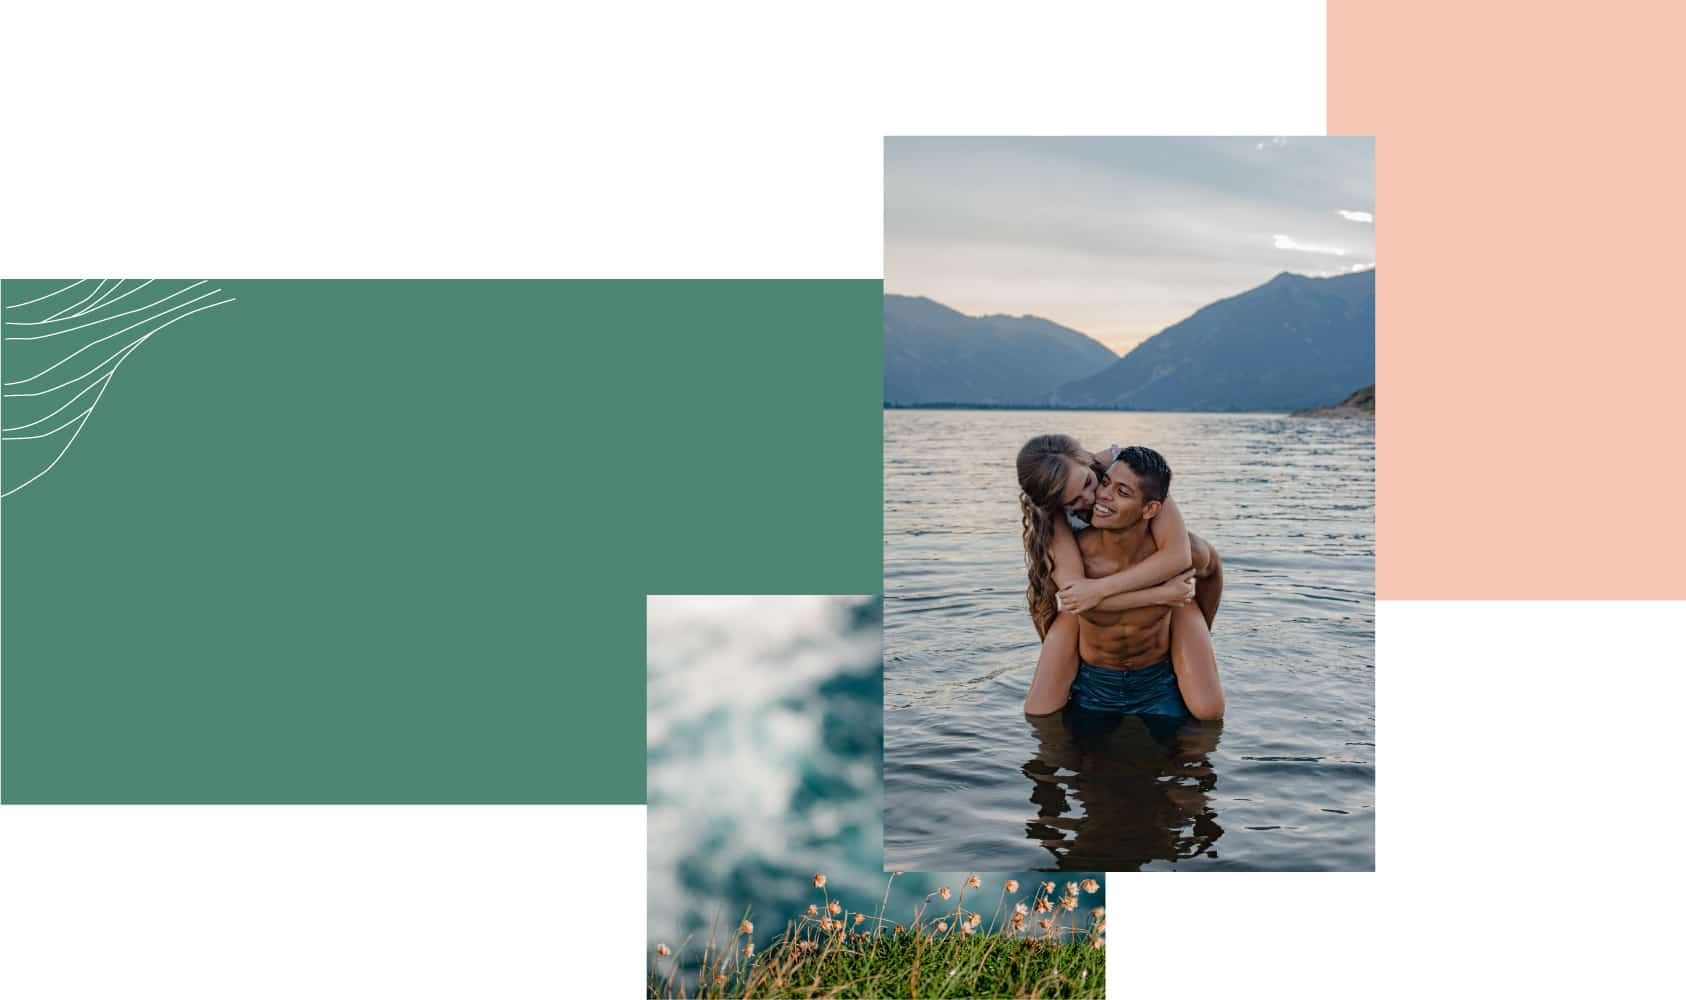 couple in an alpine lake with female on a piggy back ride of man